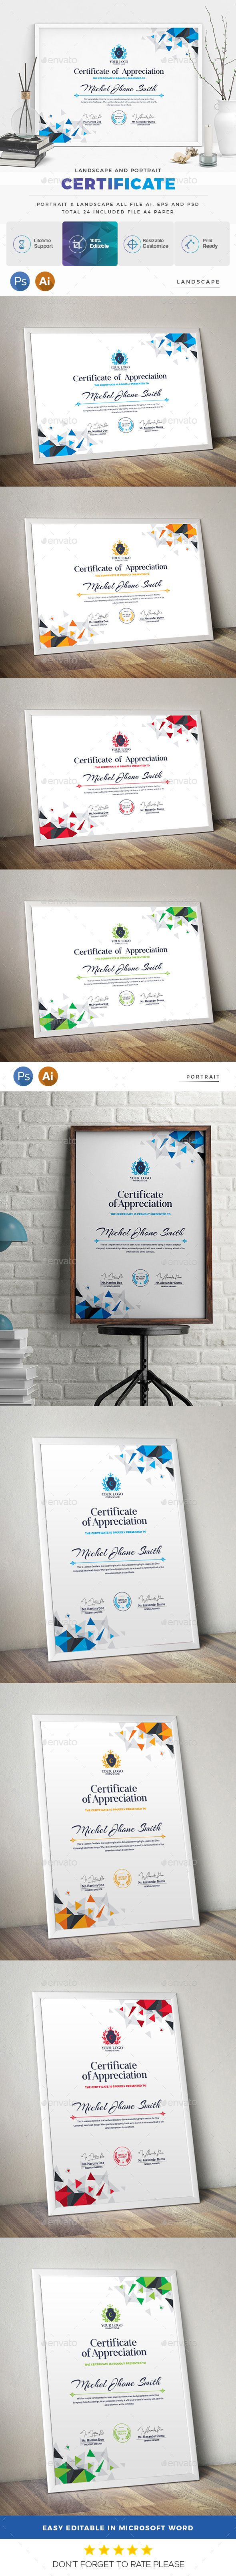 Certificate #modern design #blue  • Download here → https://graphicriver.net/item/certificate/21266877?ref=pxcr